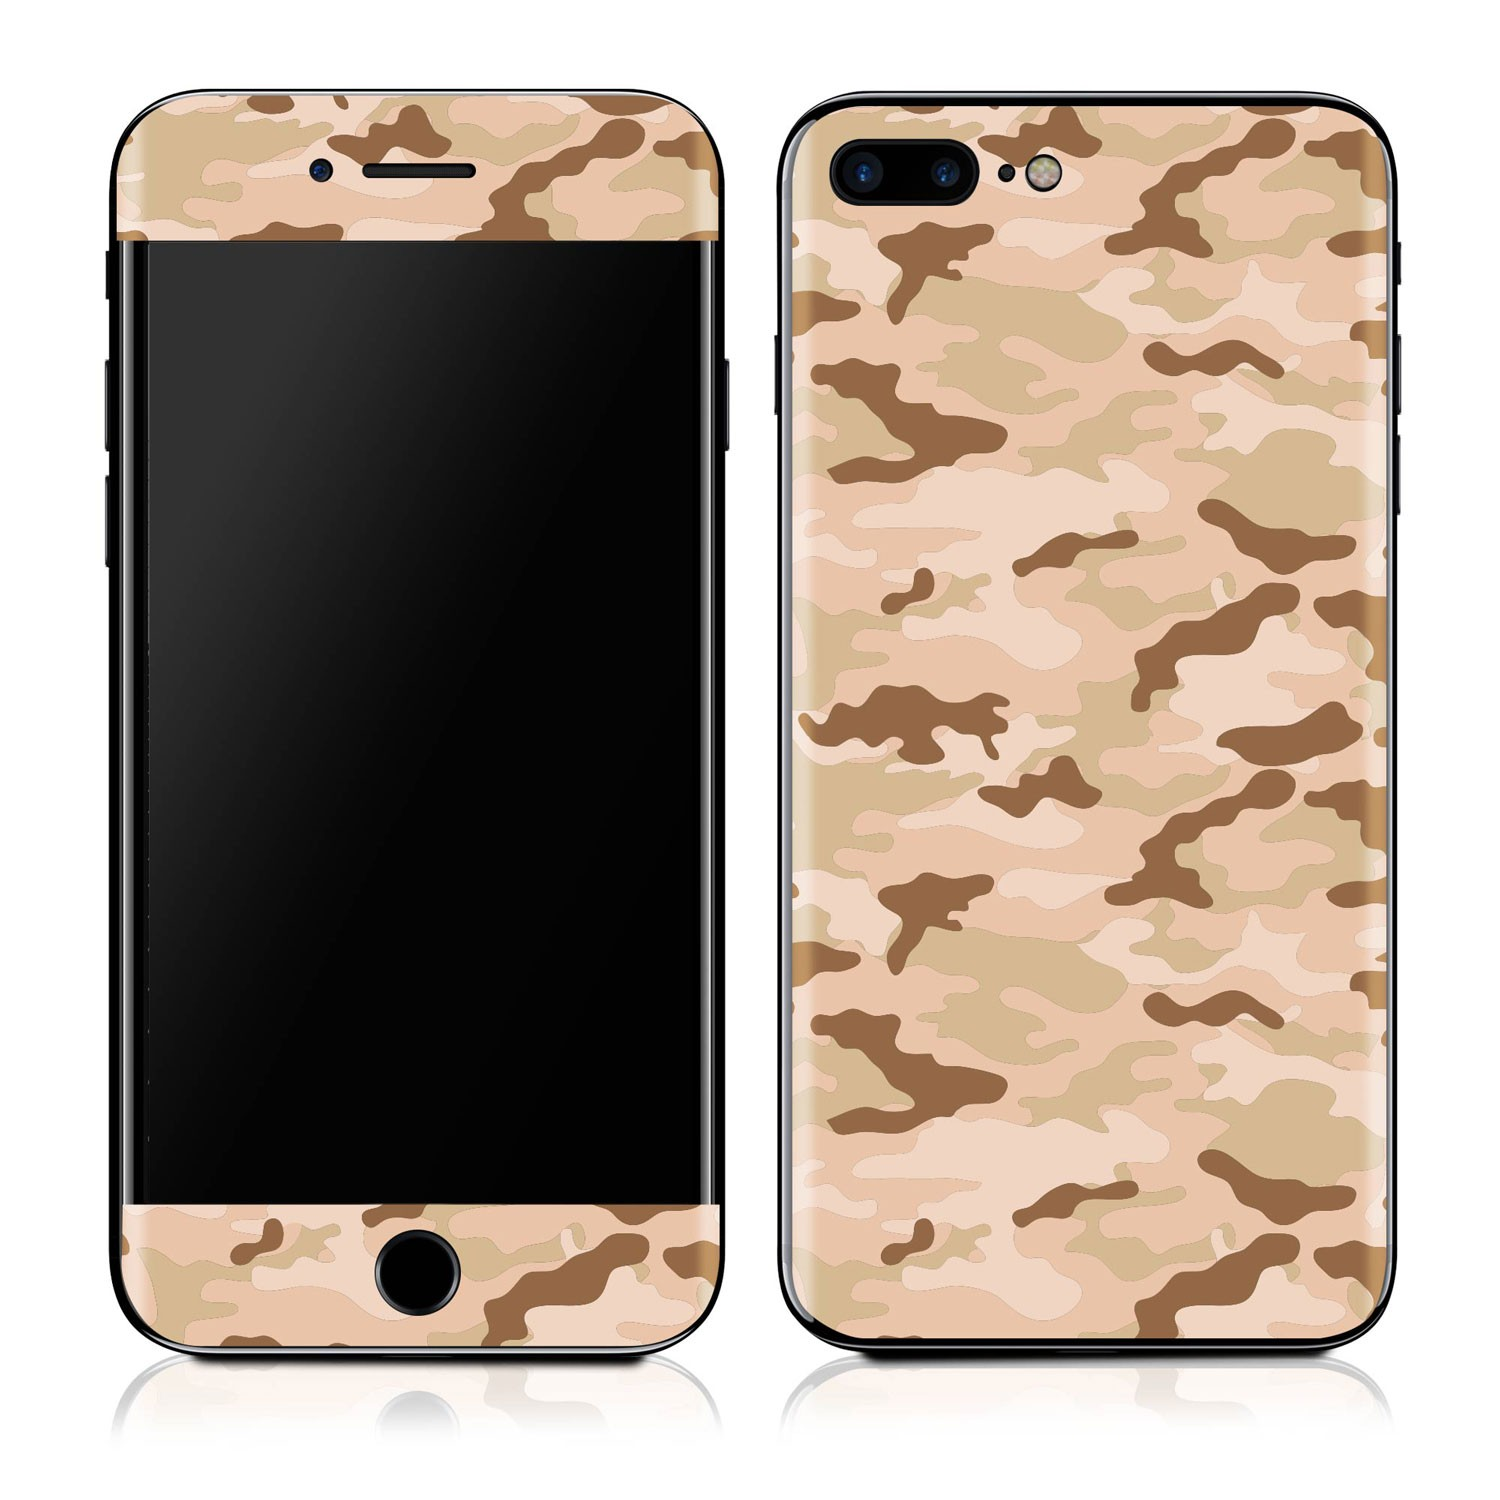 Genuine 3M Desert Camo iPhone 7 Plus Skin